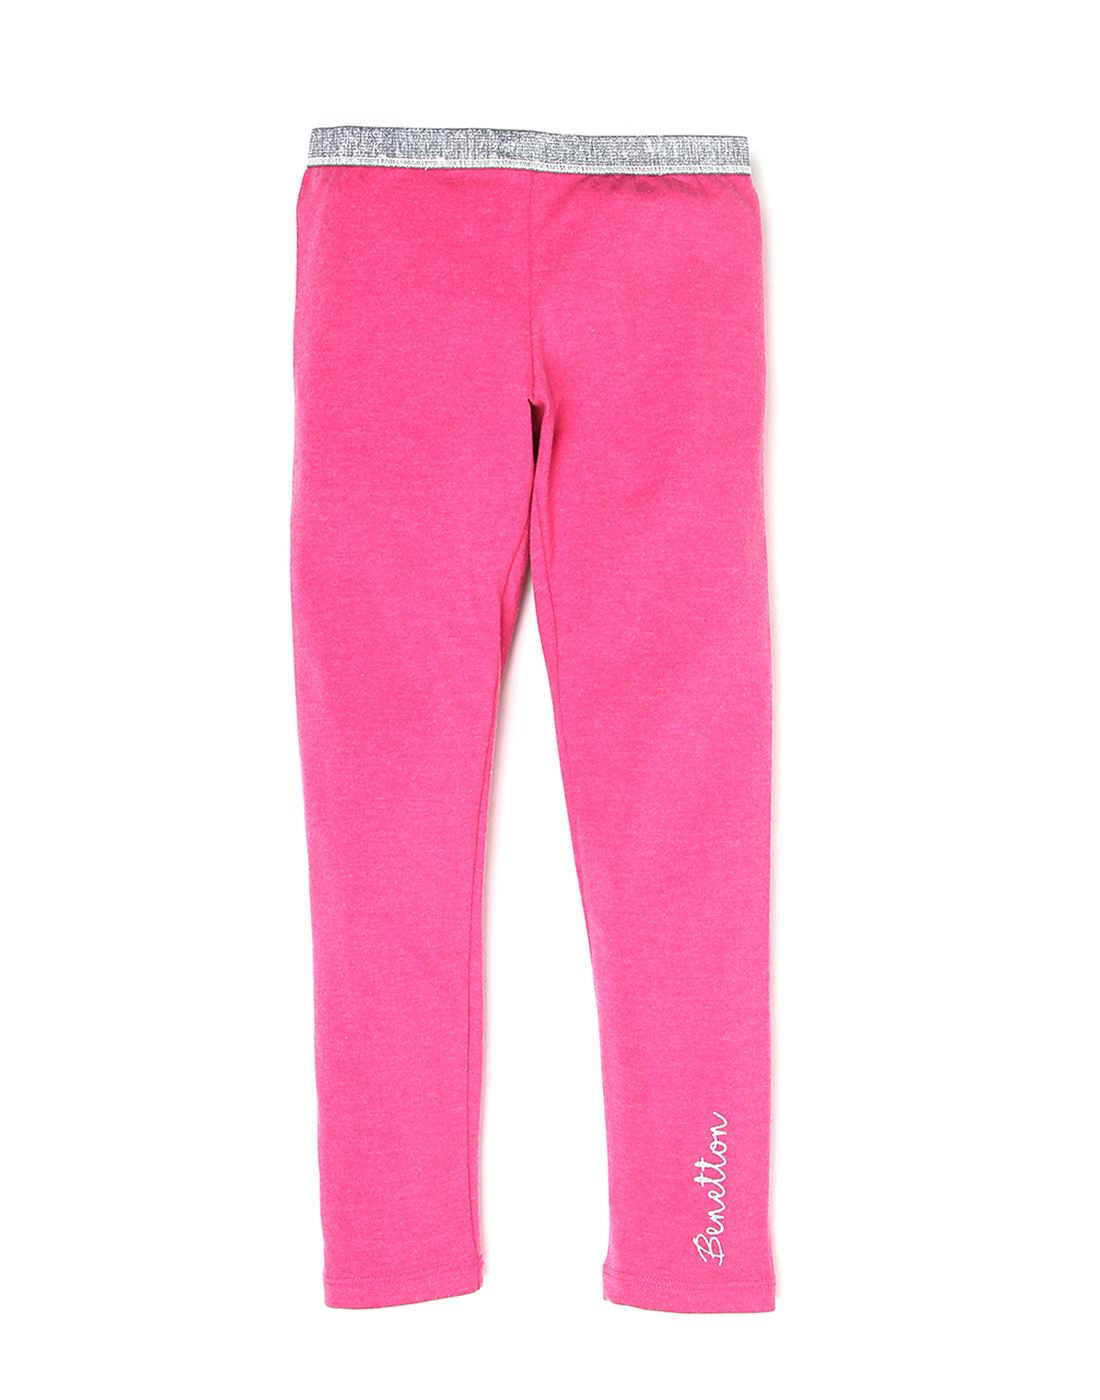 United Colors Of Benetton Girls Pink Trousers